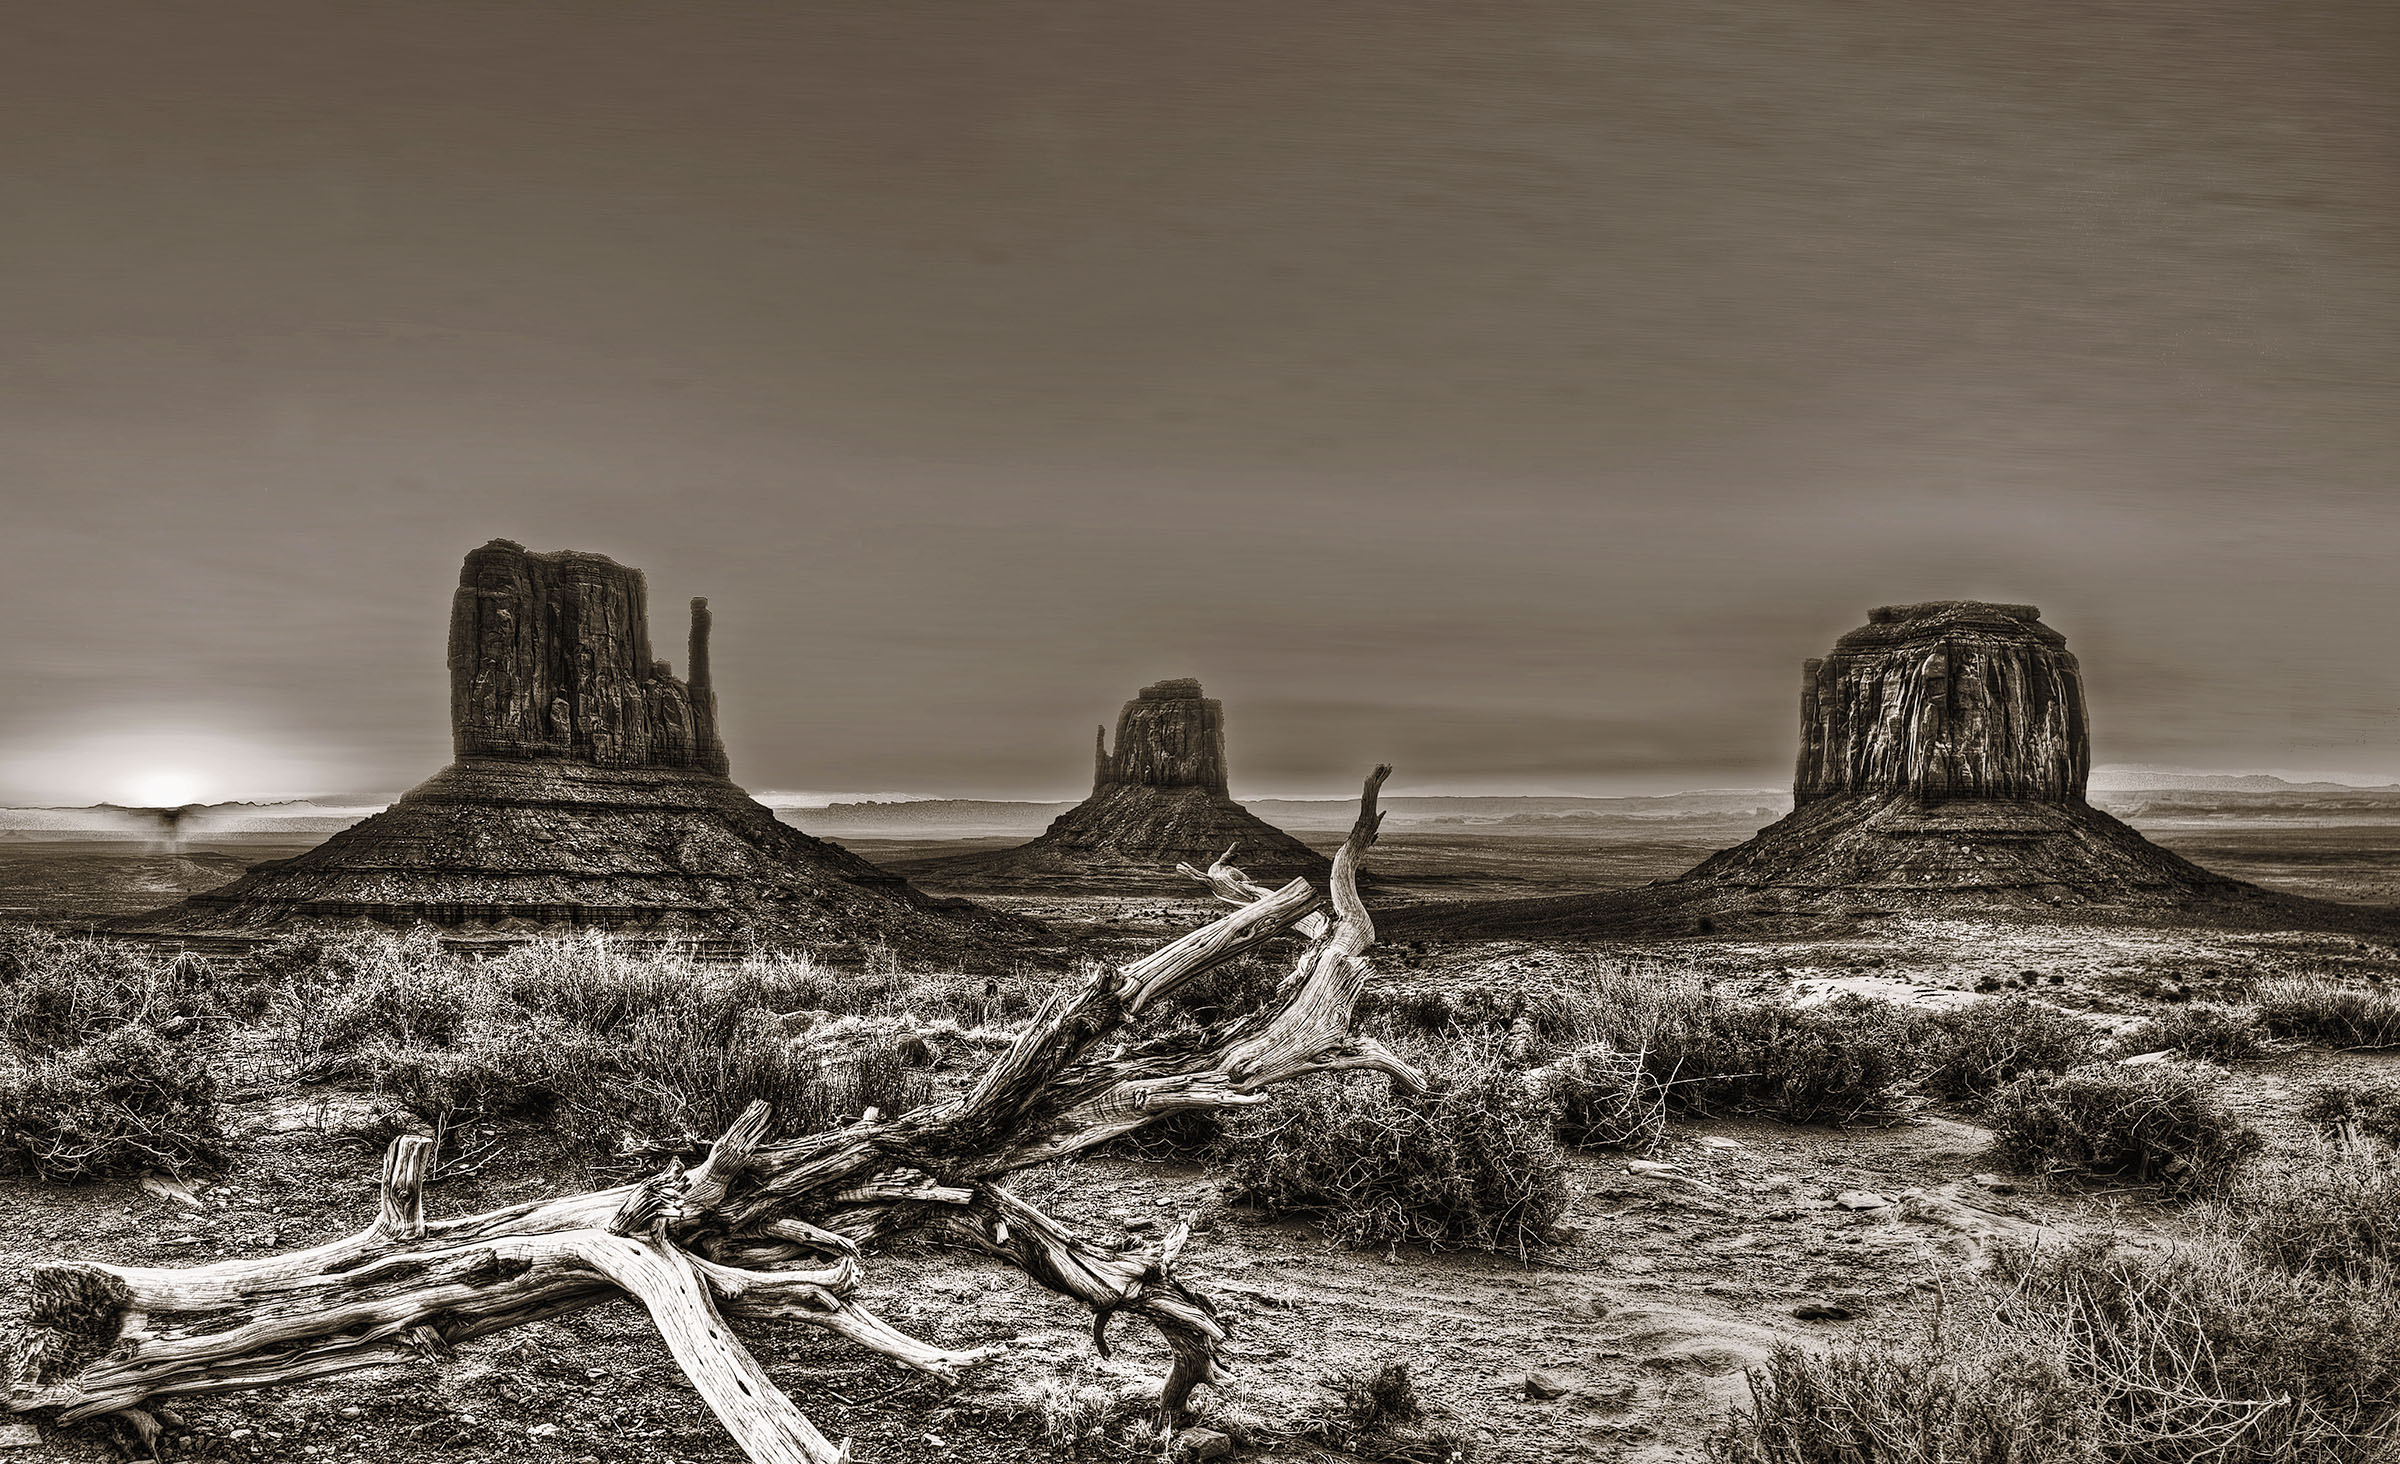 Monument Valley Sepia Southwest Landscape Wick Beavers Best Portrait Photographer in NYC New York City Portraiture and Fine Art Photography in LA Rome Berlin Munich Paris